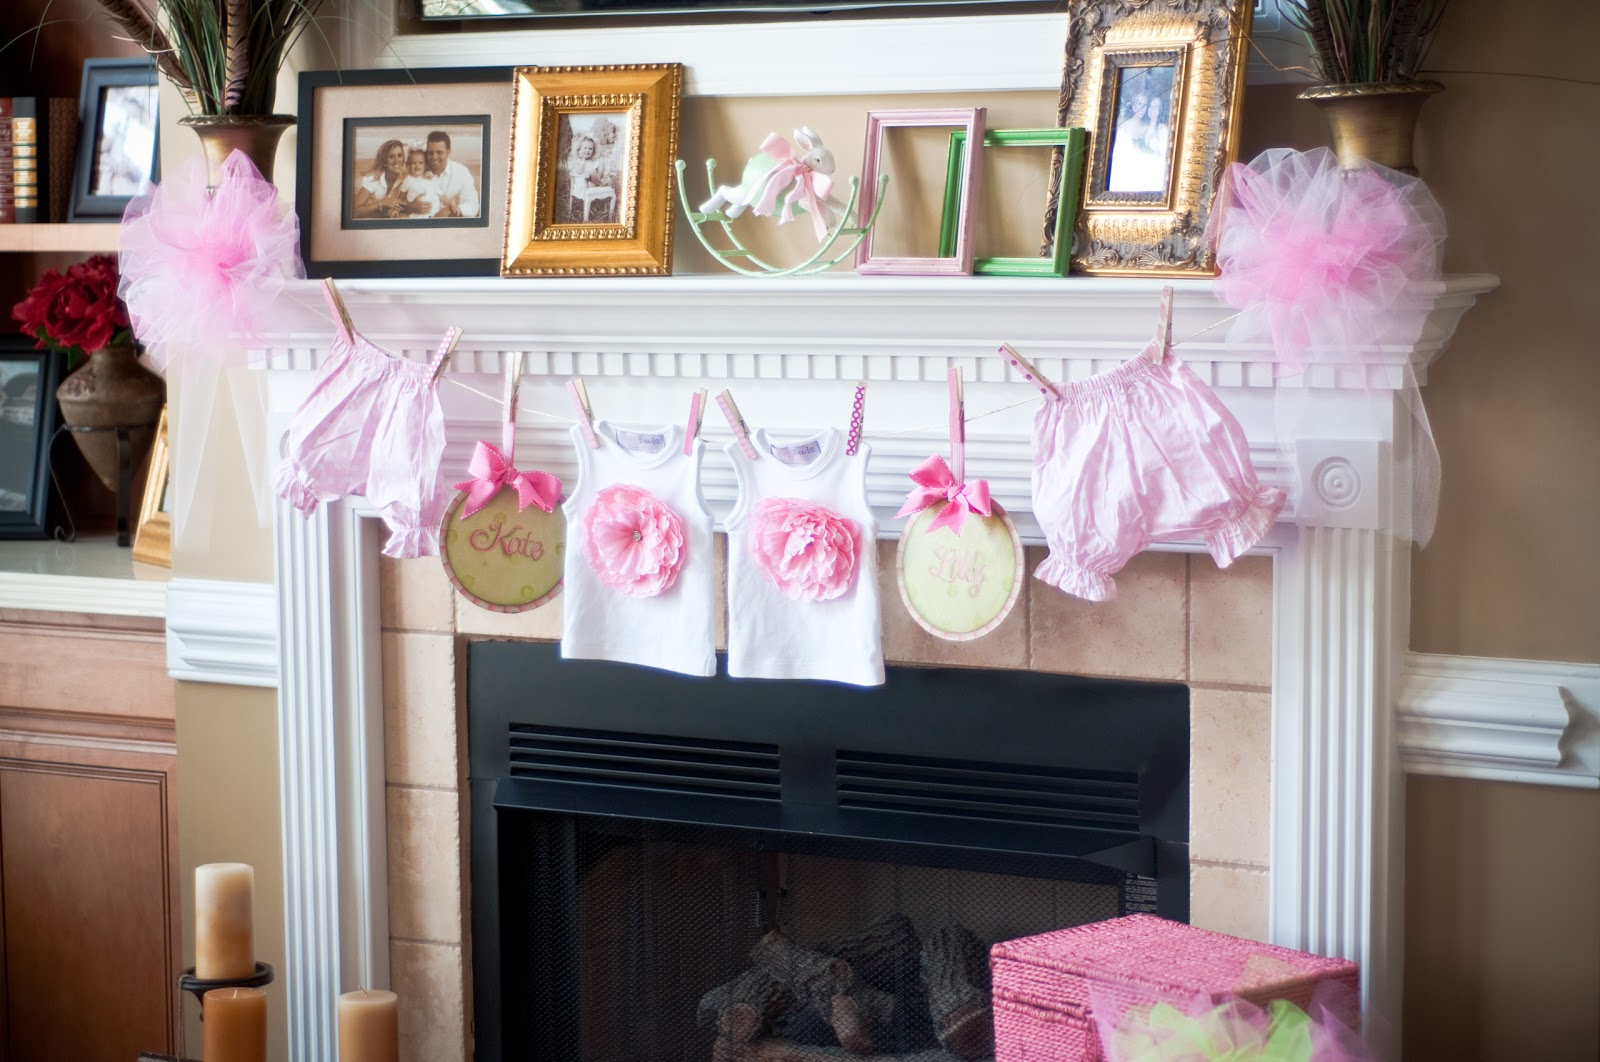 Baby Shower Decorating Ideas  Clothes Line & Wishing Tree